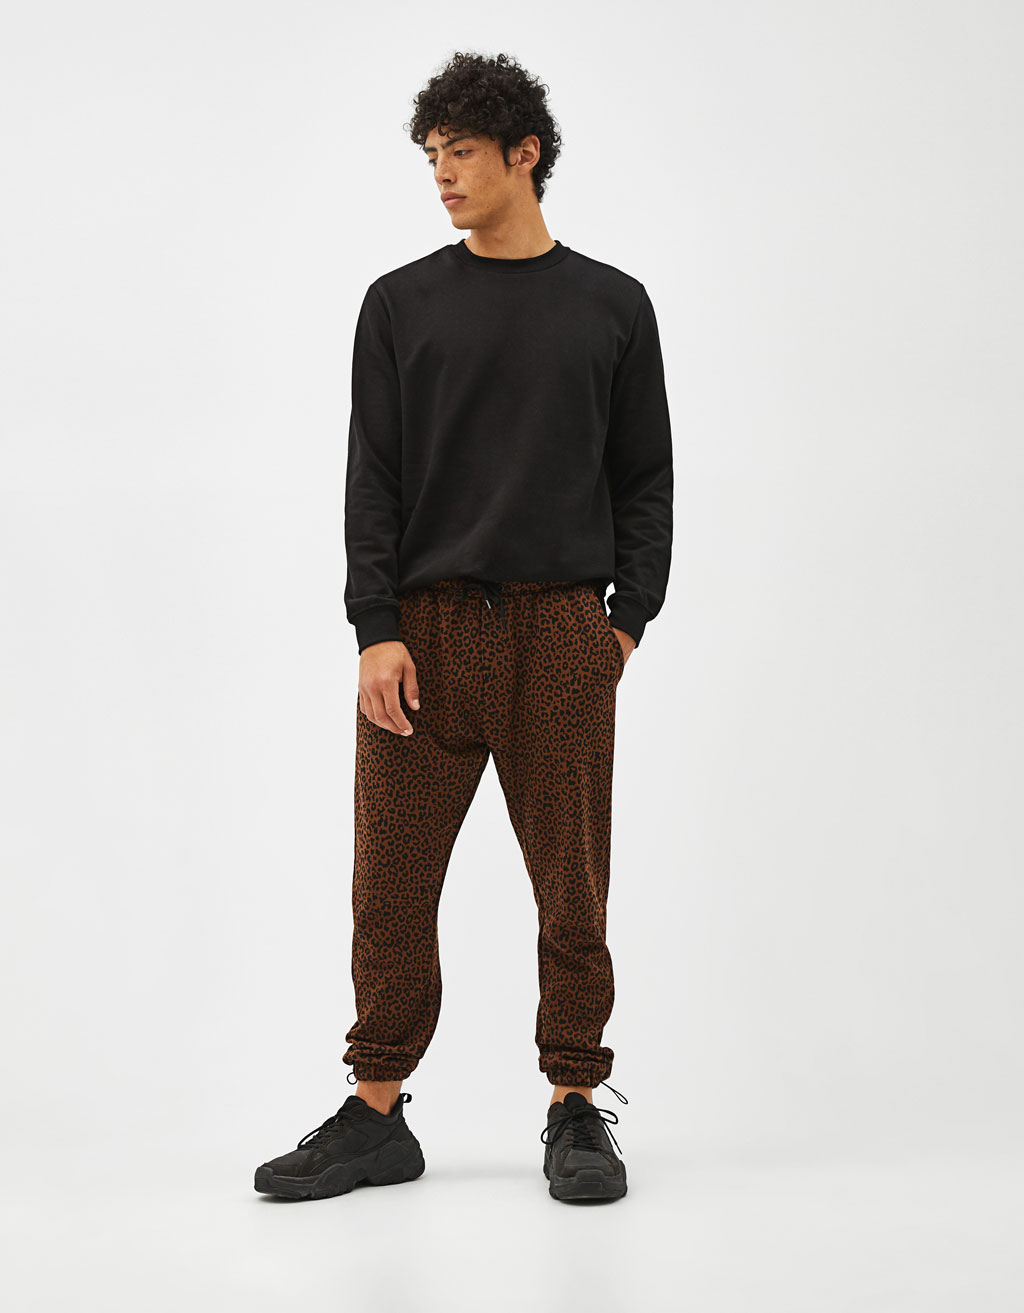 Leopard print jogging trousers